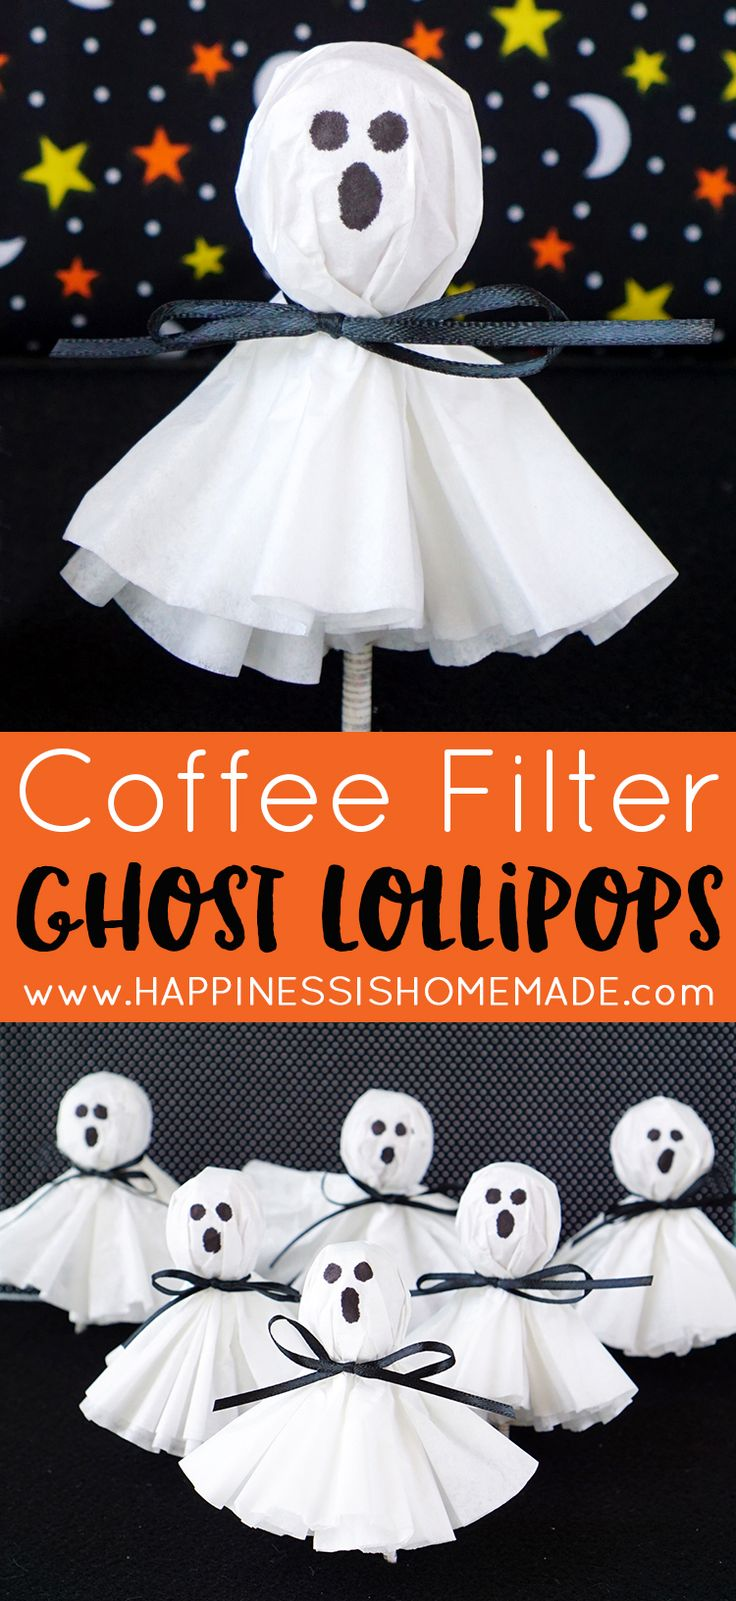 Halloween classroom crafts - Coffee Filter Ghost Lollipops